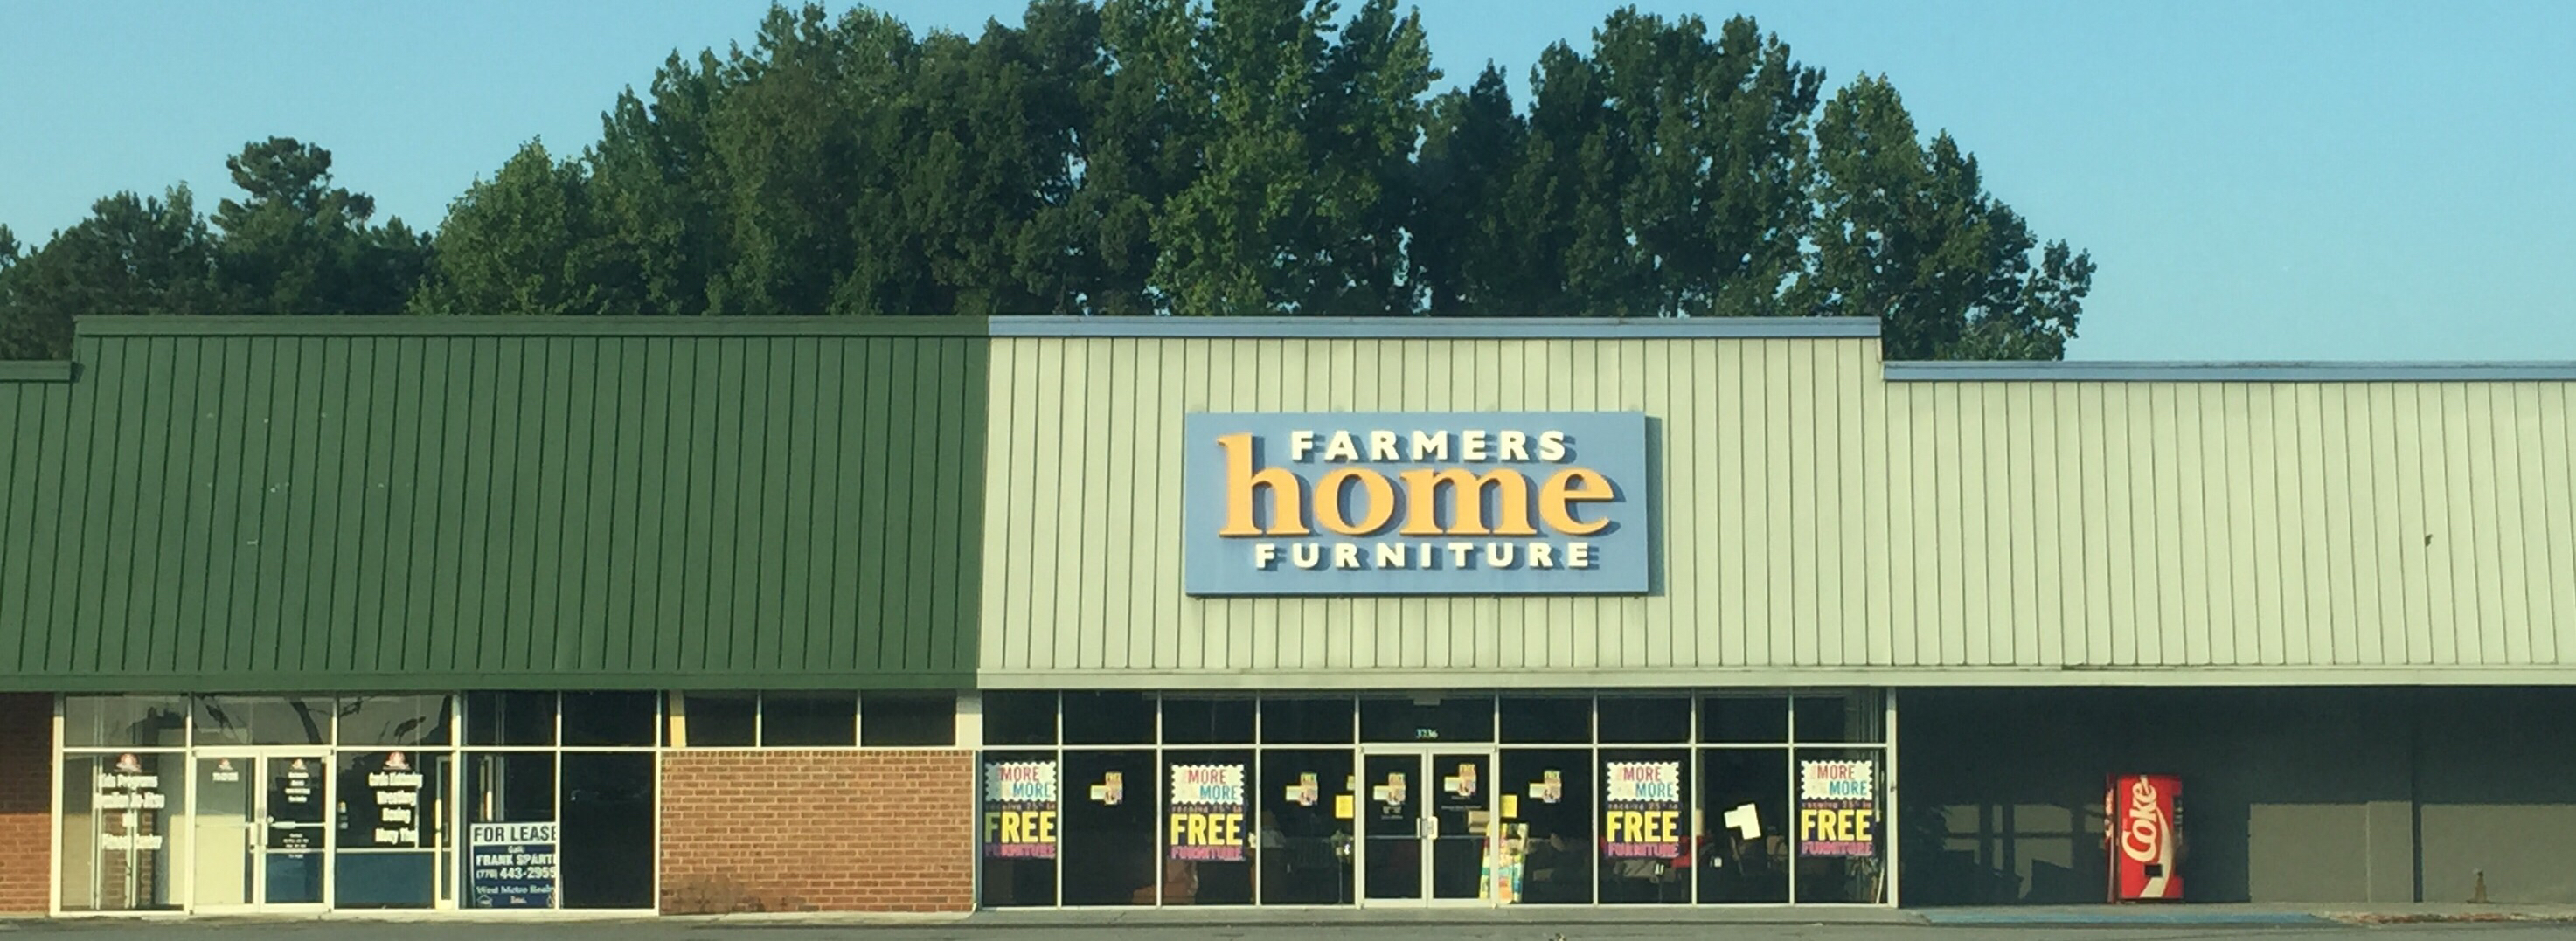 Farmers Home Furniture 3736 Atlanta Hwy Hiram Ga 30141